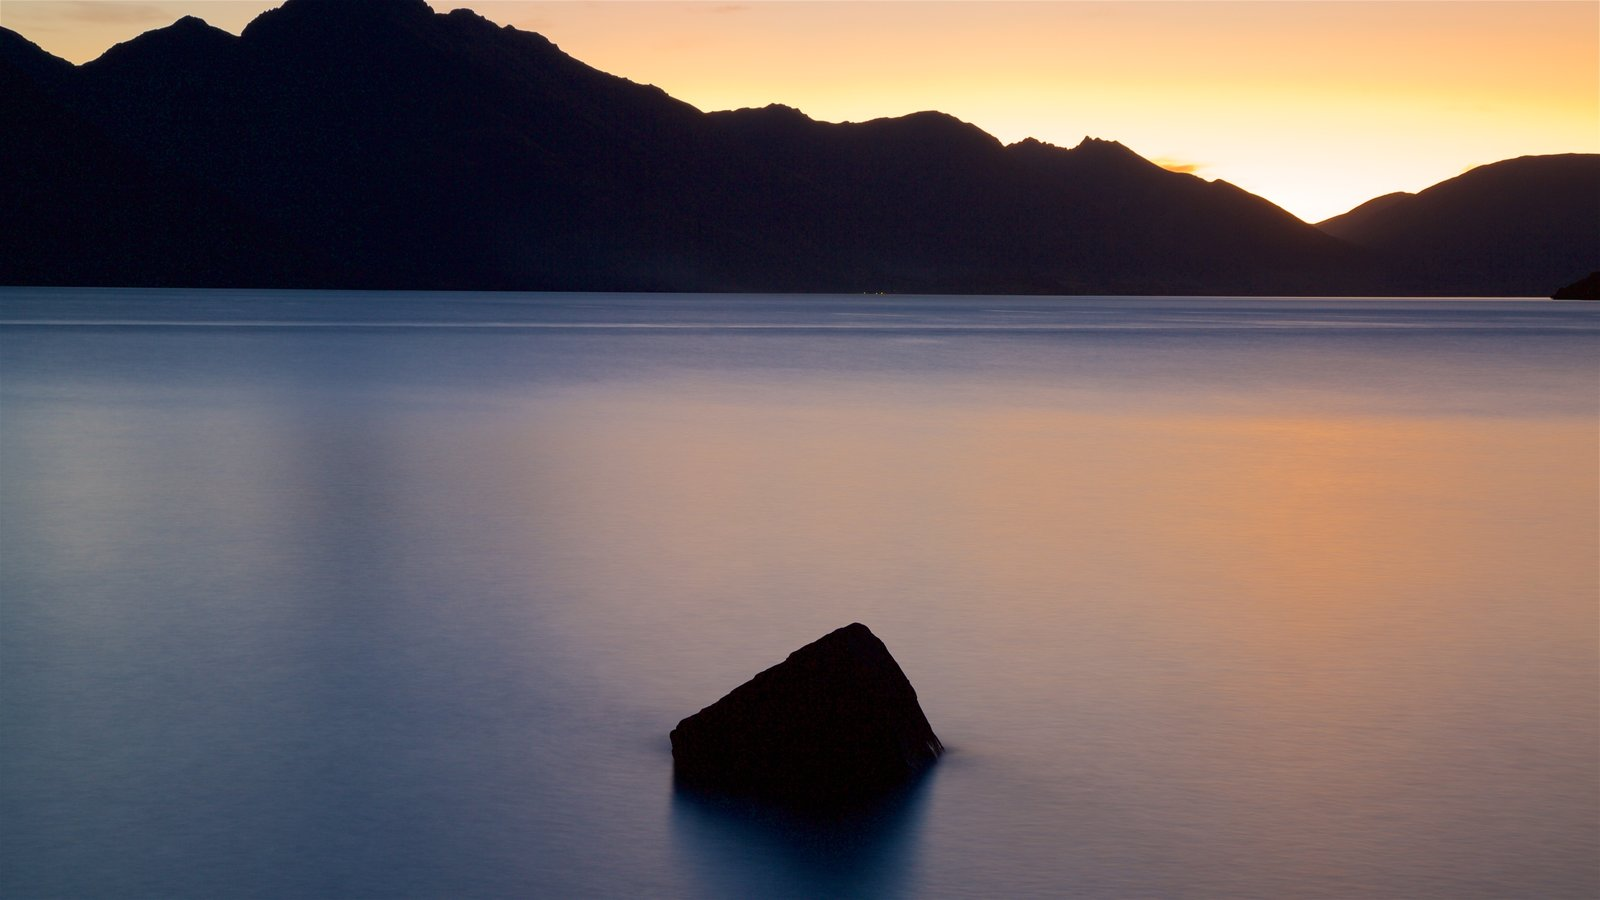 Lake Wakatipu which includes a lake or waterhole, a sunset and mountains